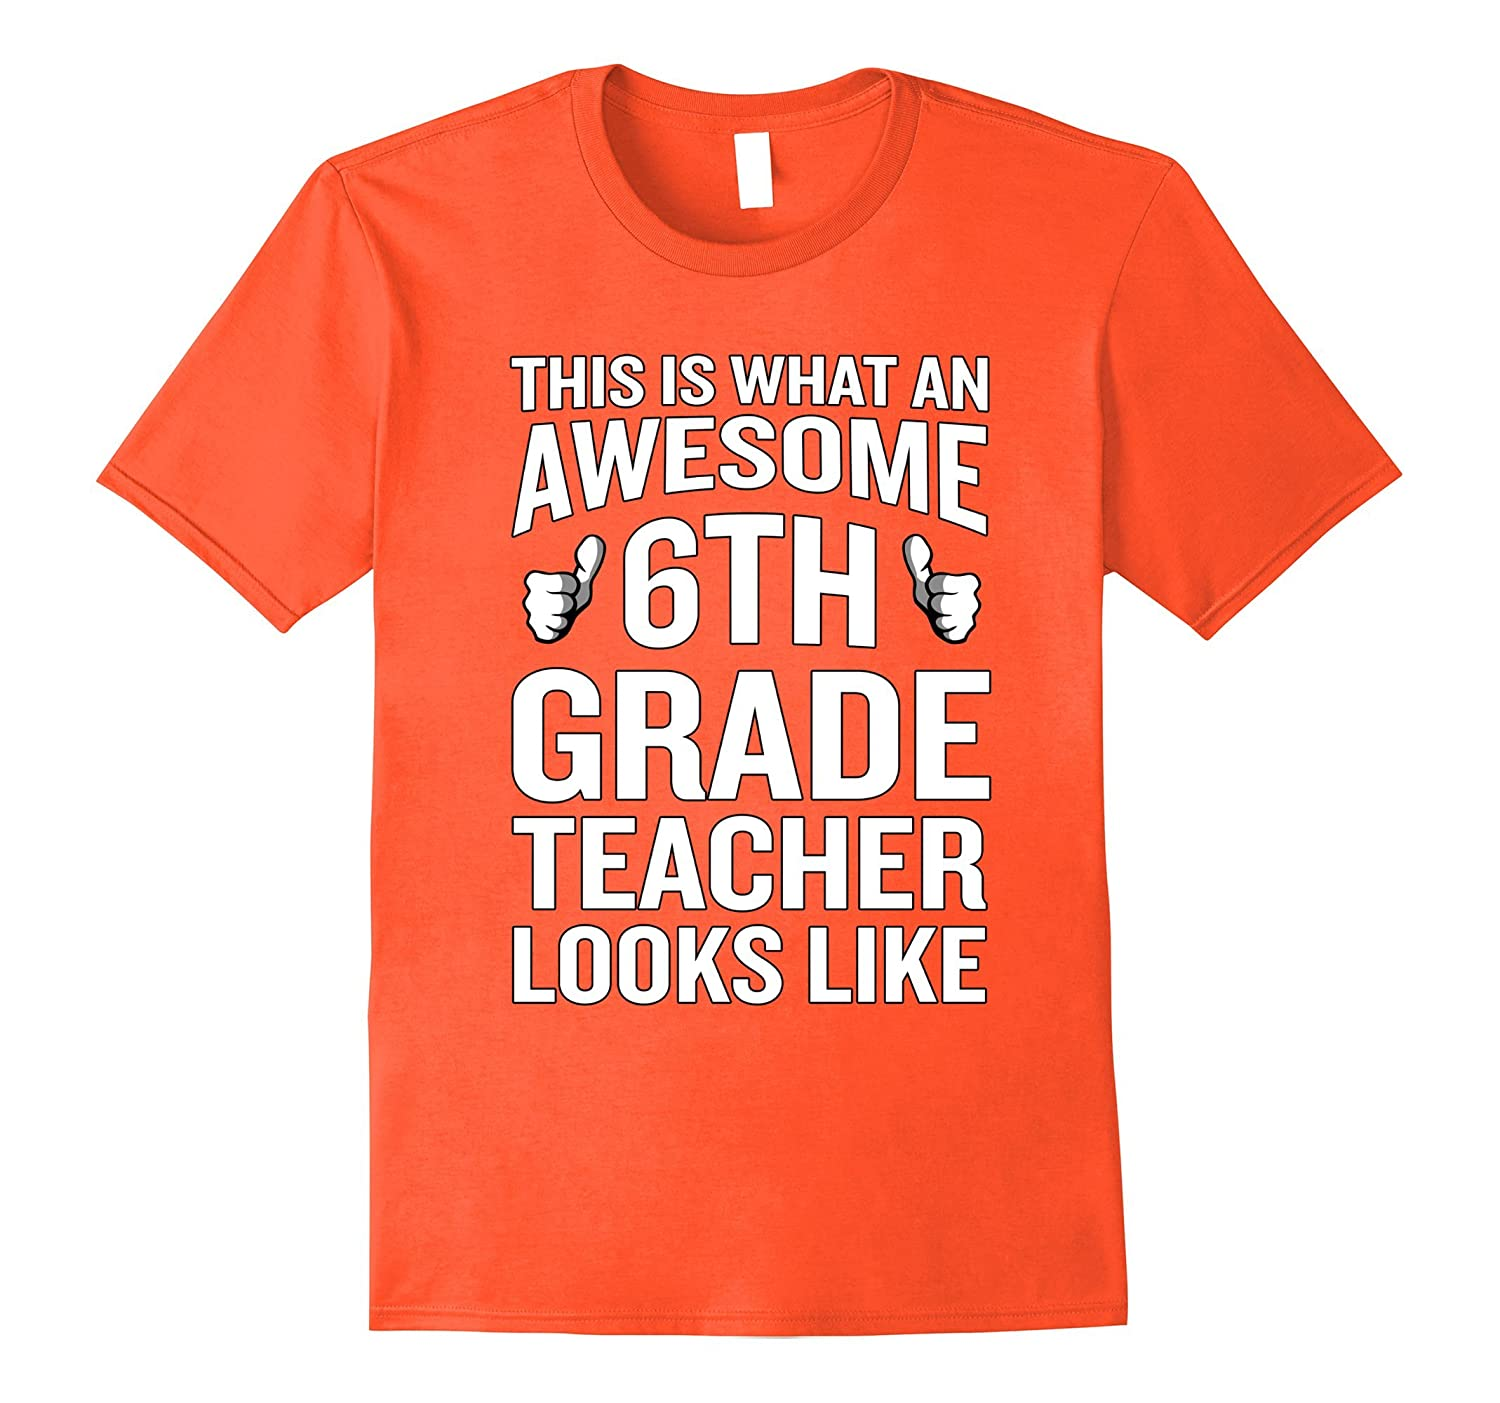 Awesome 6th Grade Teacher Looks Like T-Shirt Funny Gag Gift-FL